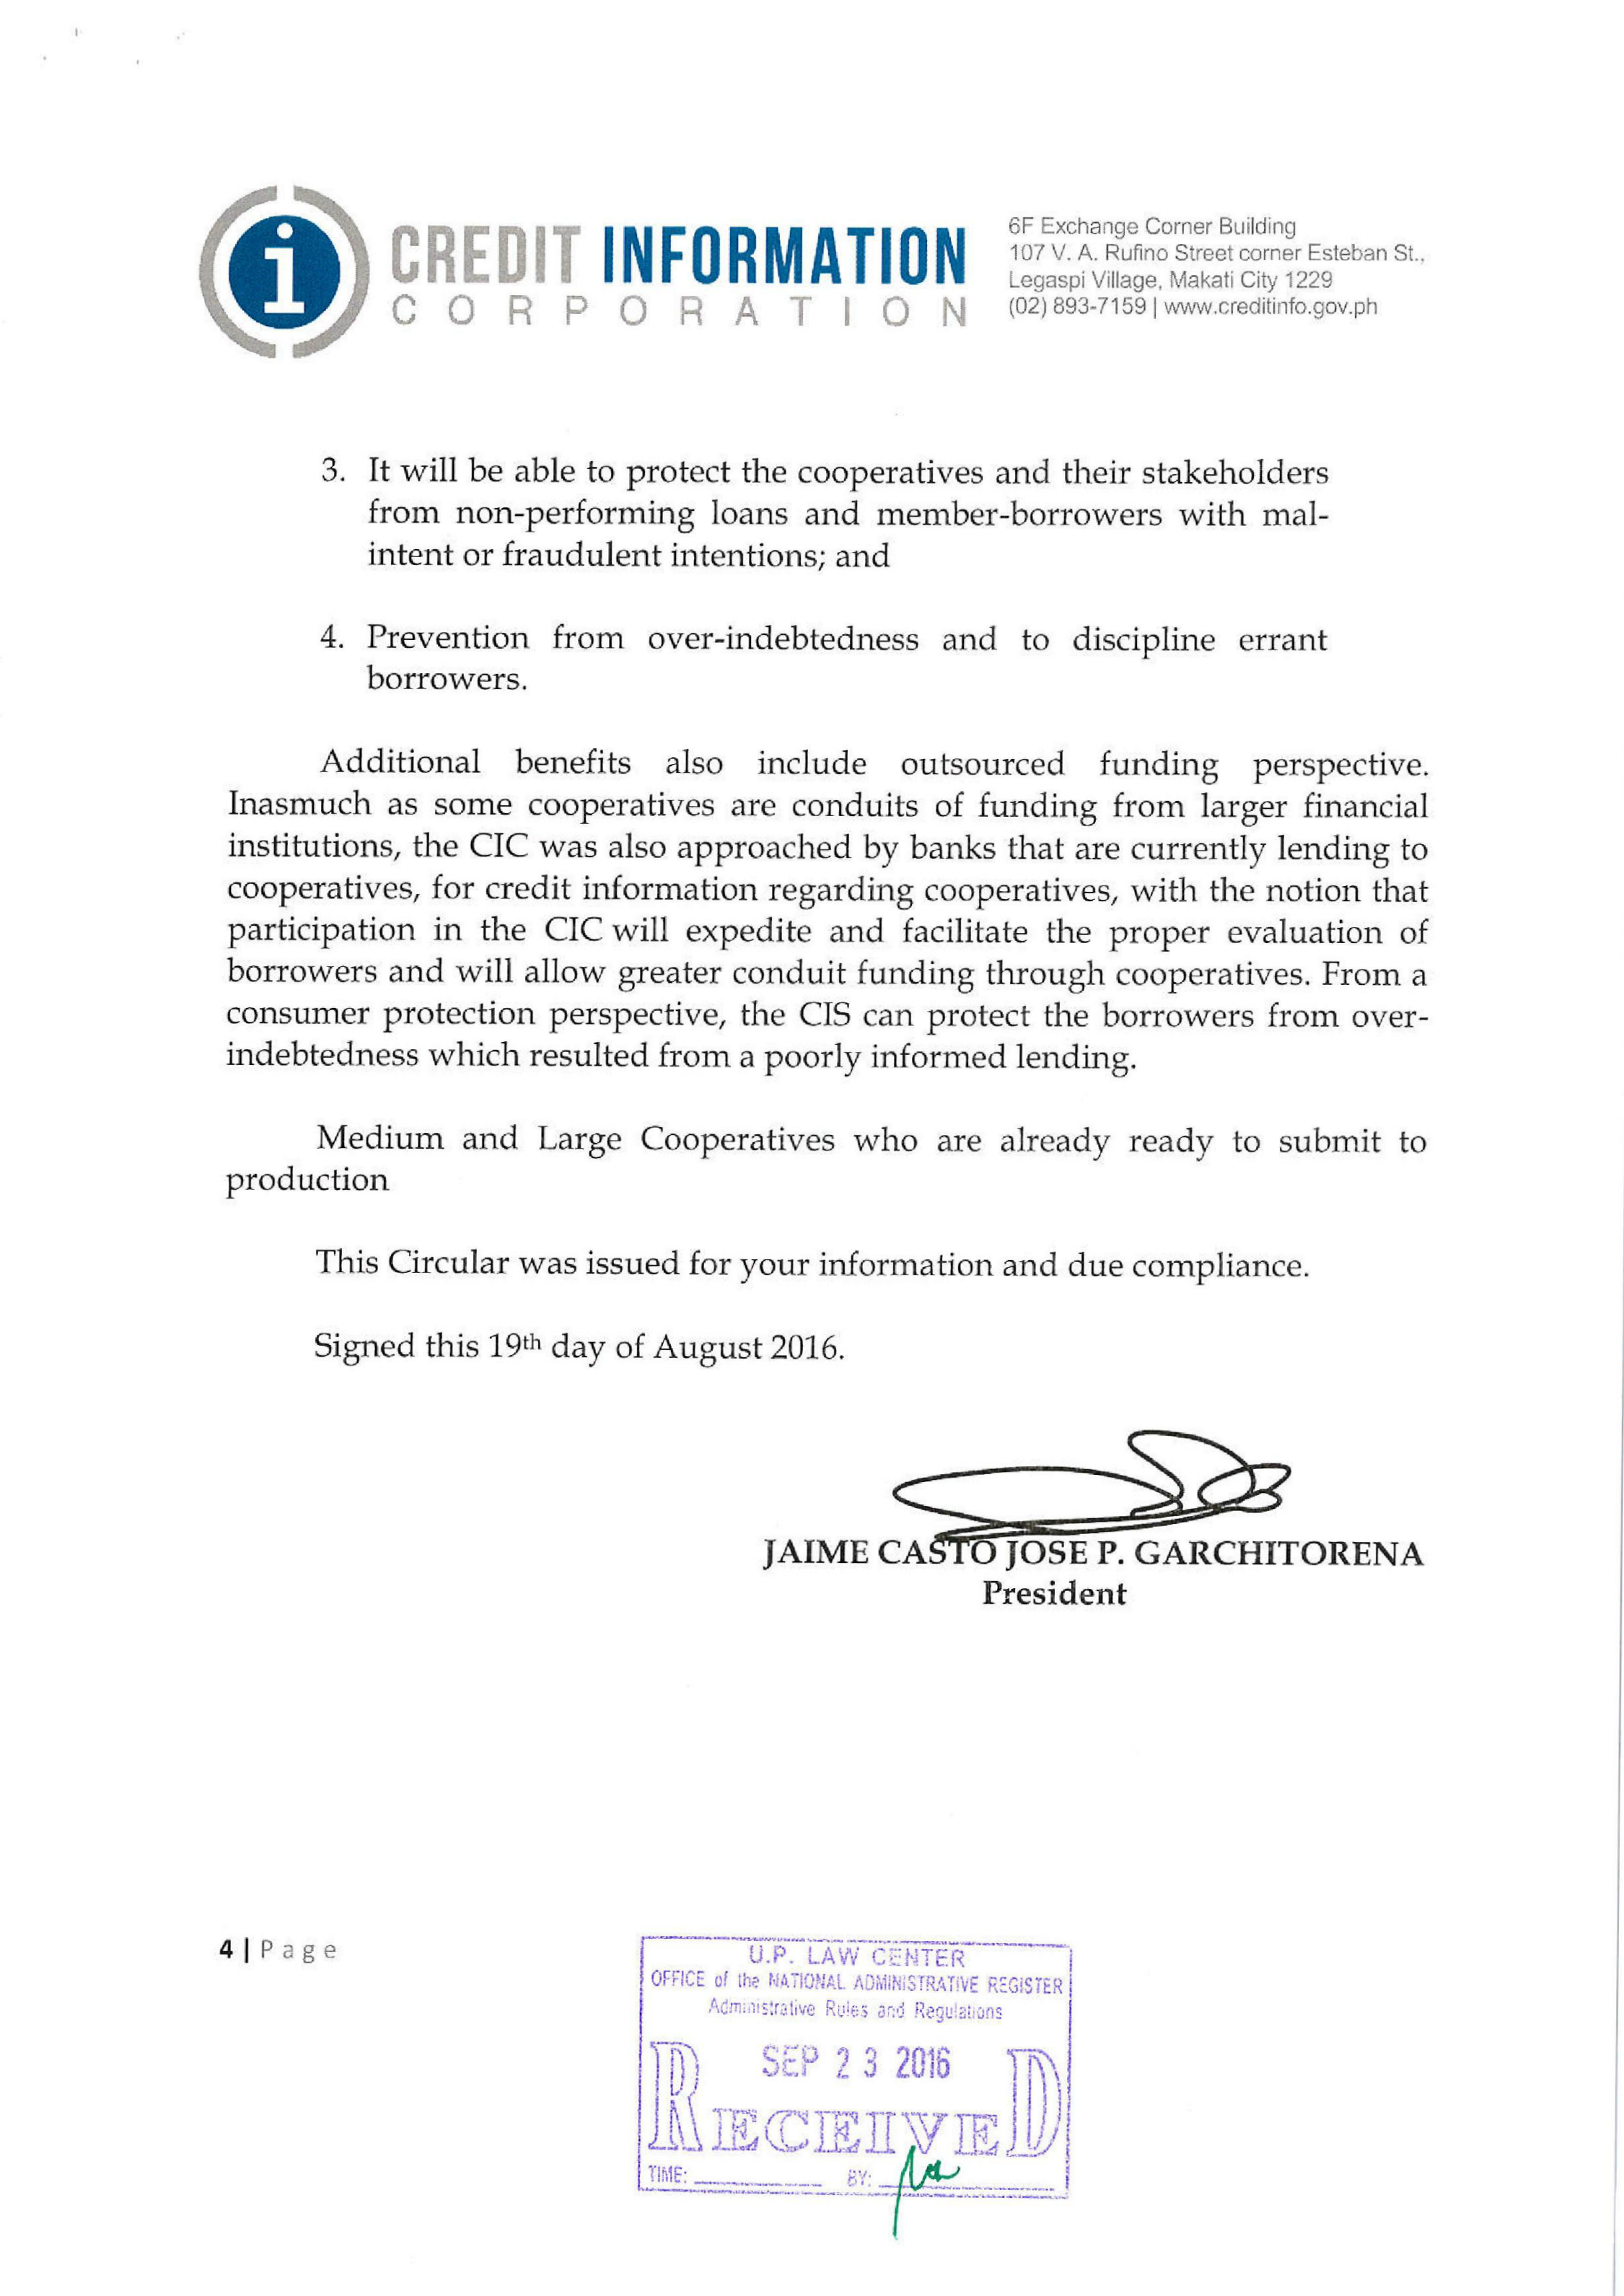 cic-circular-no-2016-04-ser-of-2016-page-004